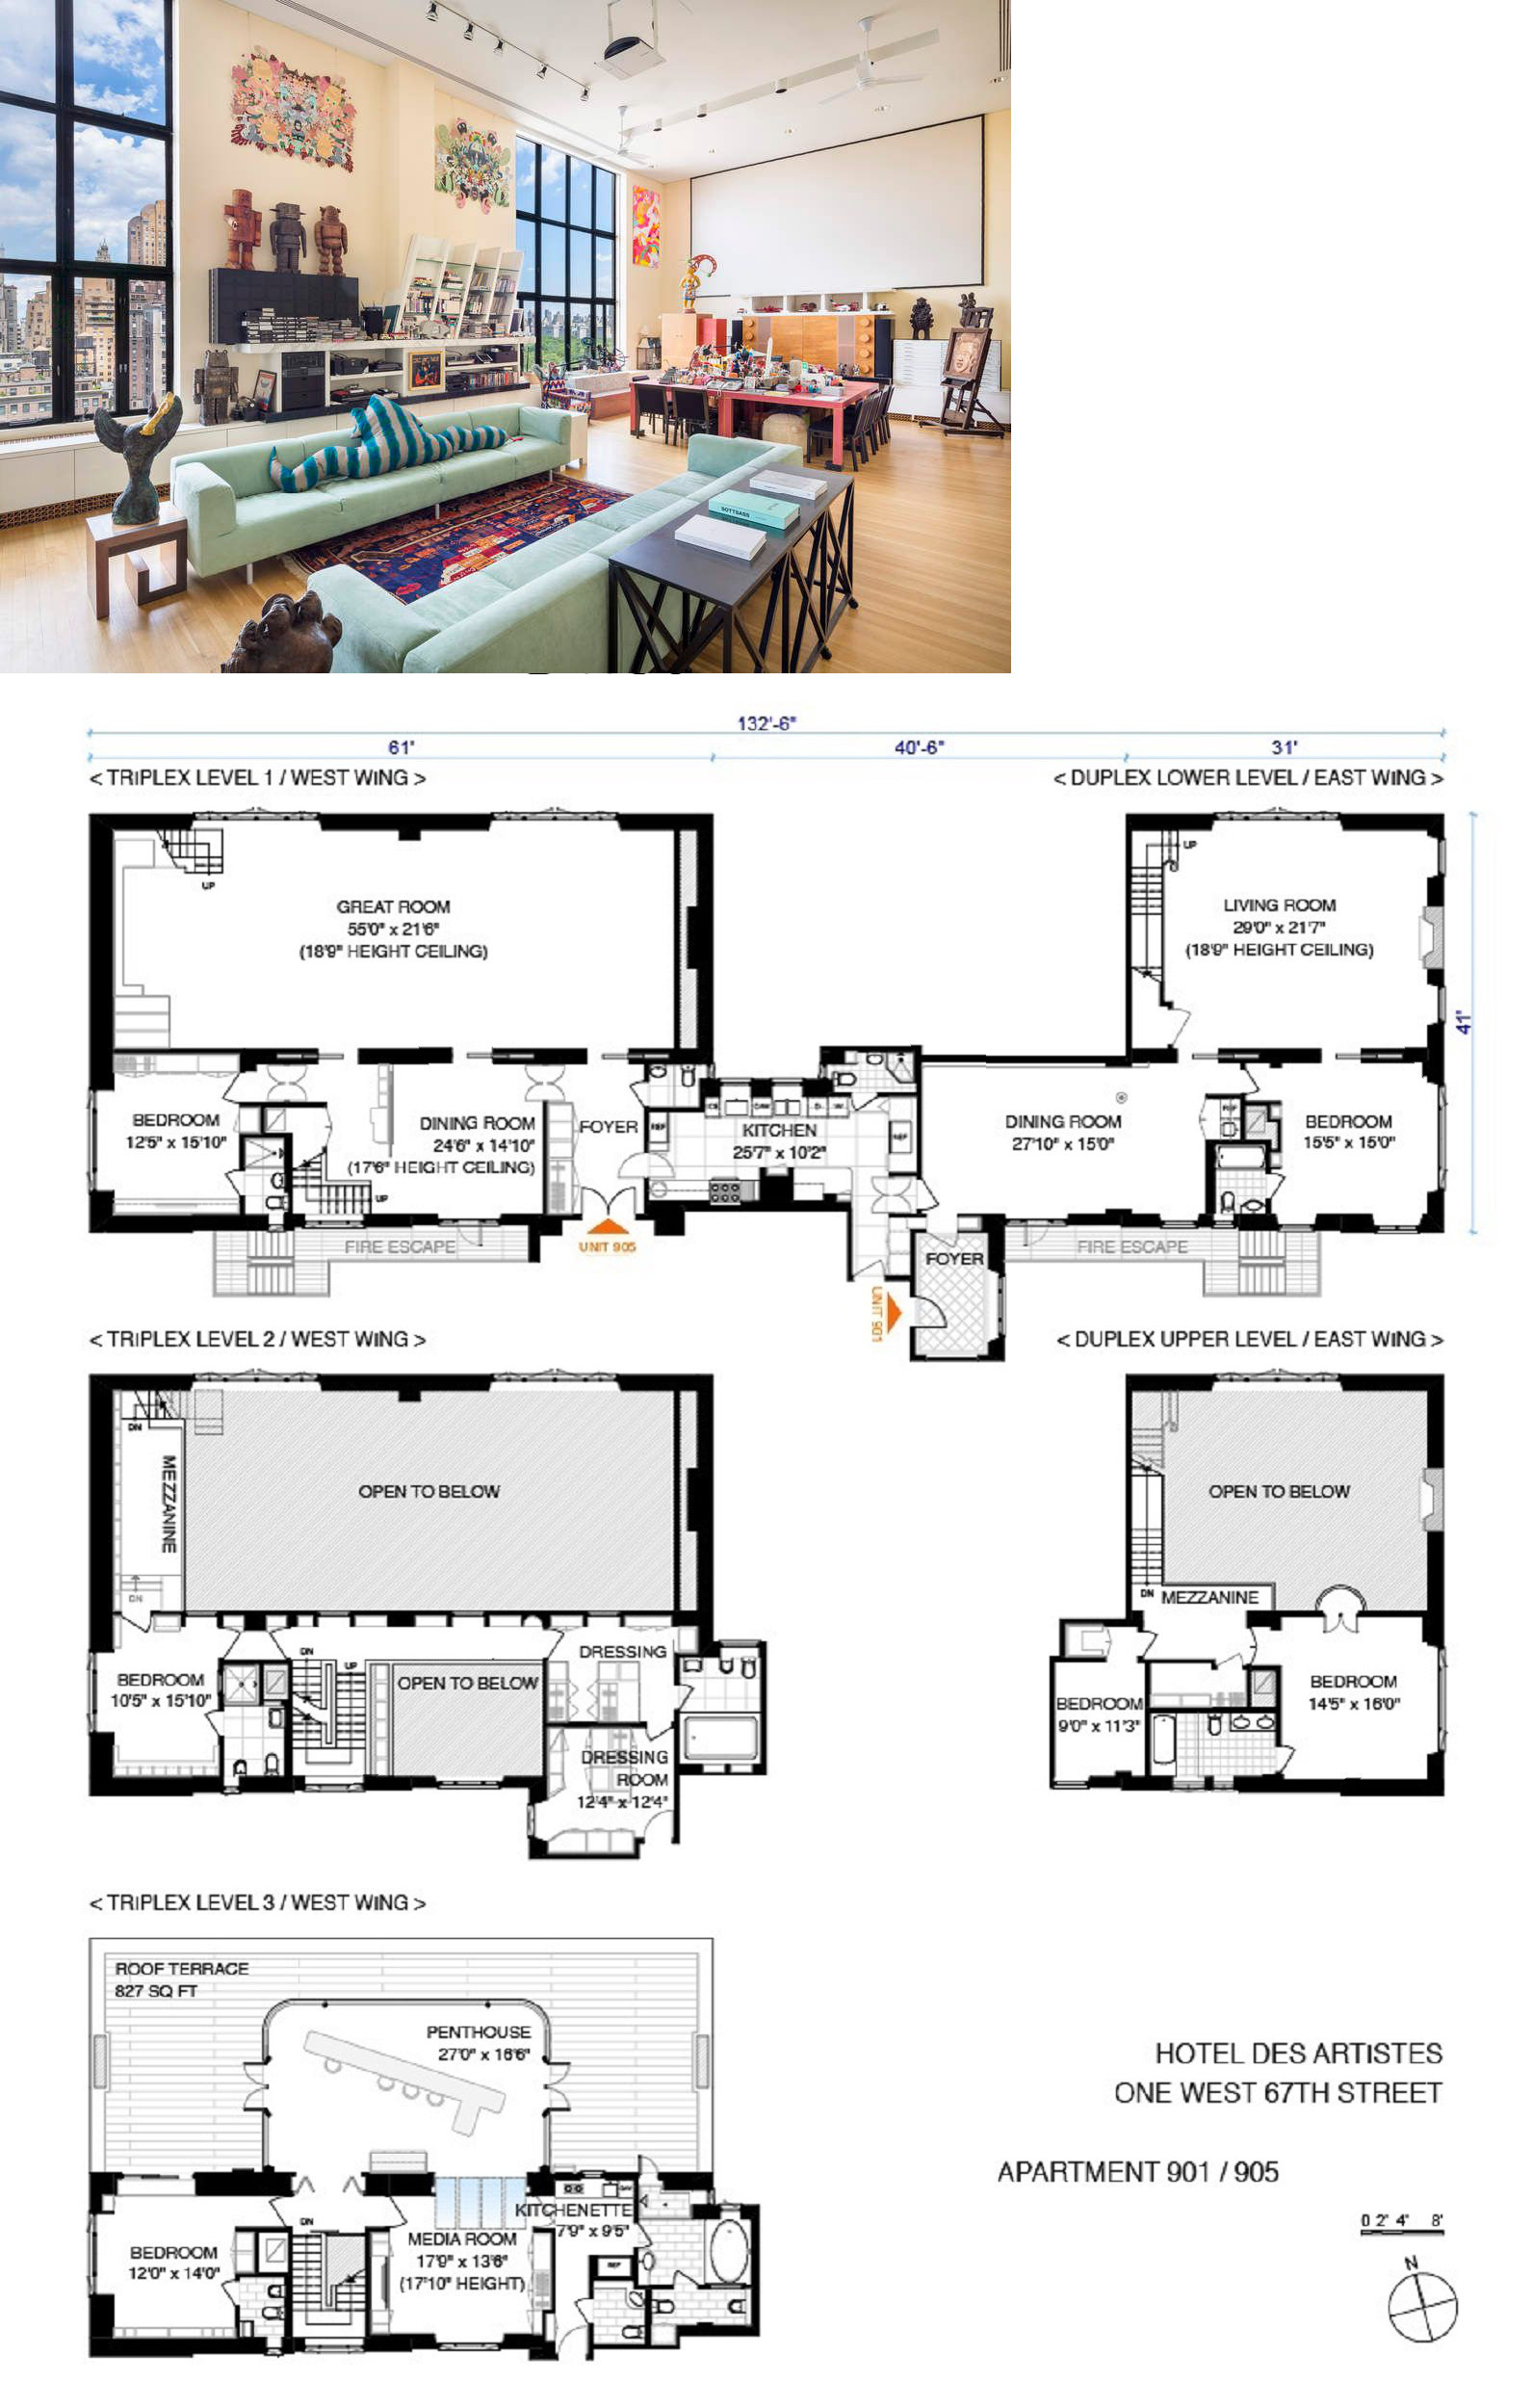 View Price Pictures And Listing Information For 1 West 67th Street Ph905 901 New York Ny 10023 Through A Combination Of Planta Baixa Arquitetura Urbanismo